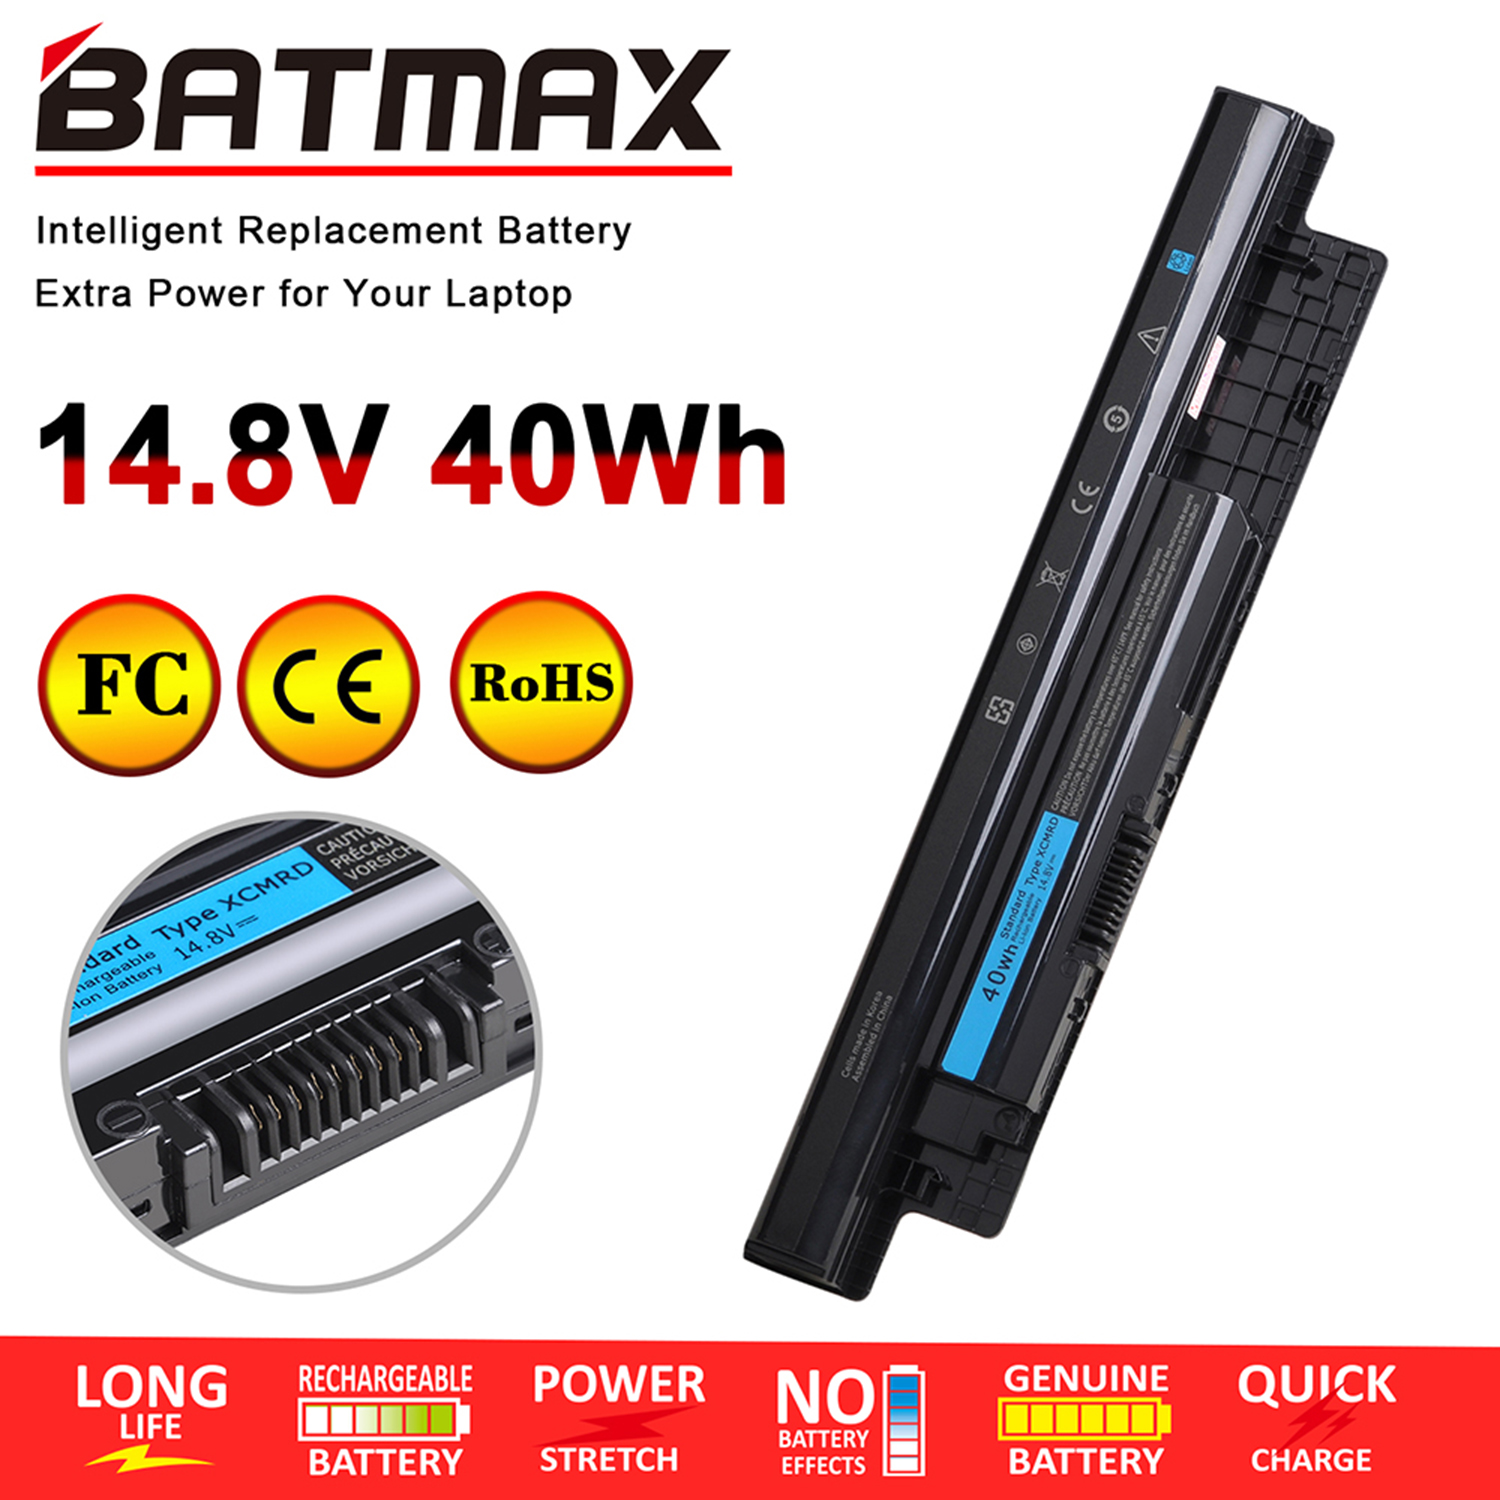 MR90Y Laptop Battery For Dell Inspiron 14 3421, 14R 5421 5437, 15 3521, 15R 5521 5537, 17 3721 3737, 17R 5721 5737, Fit P/N XCMR